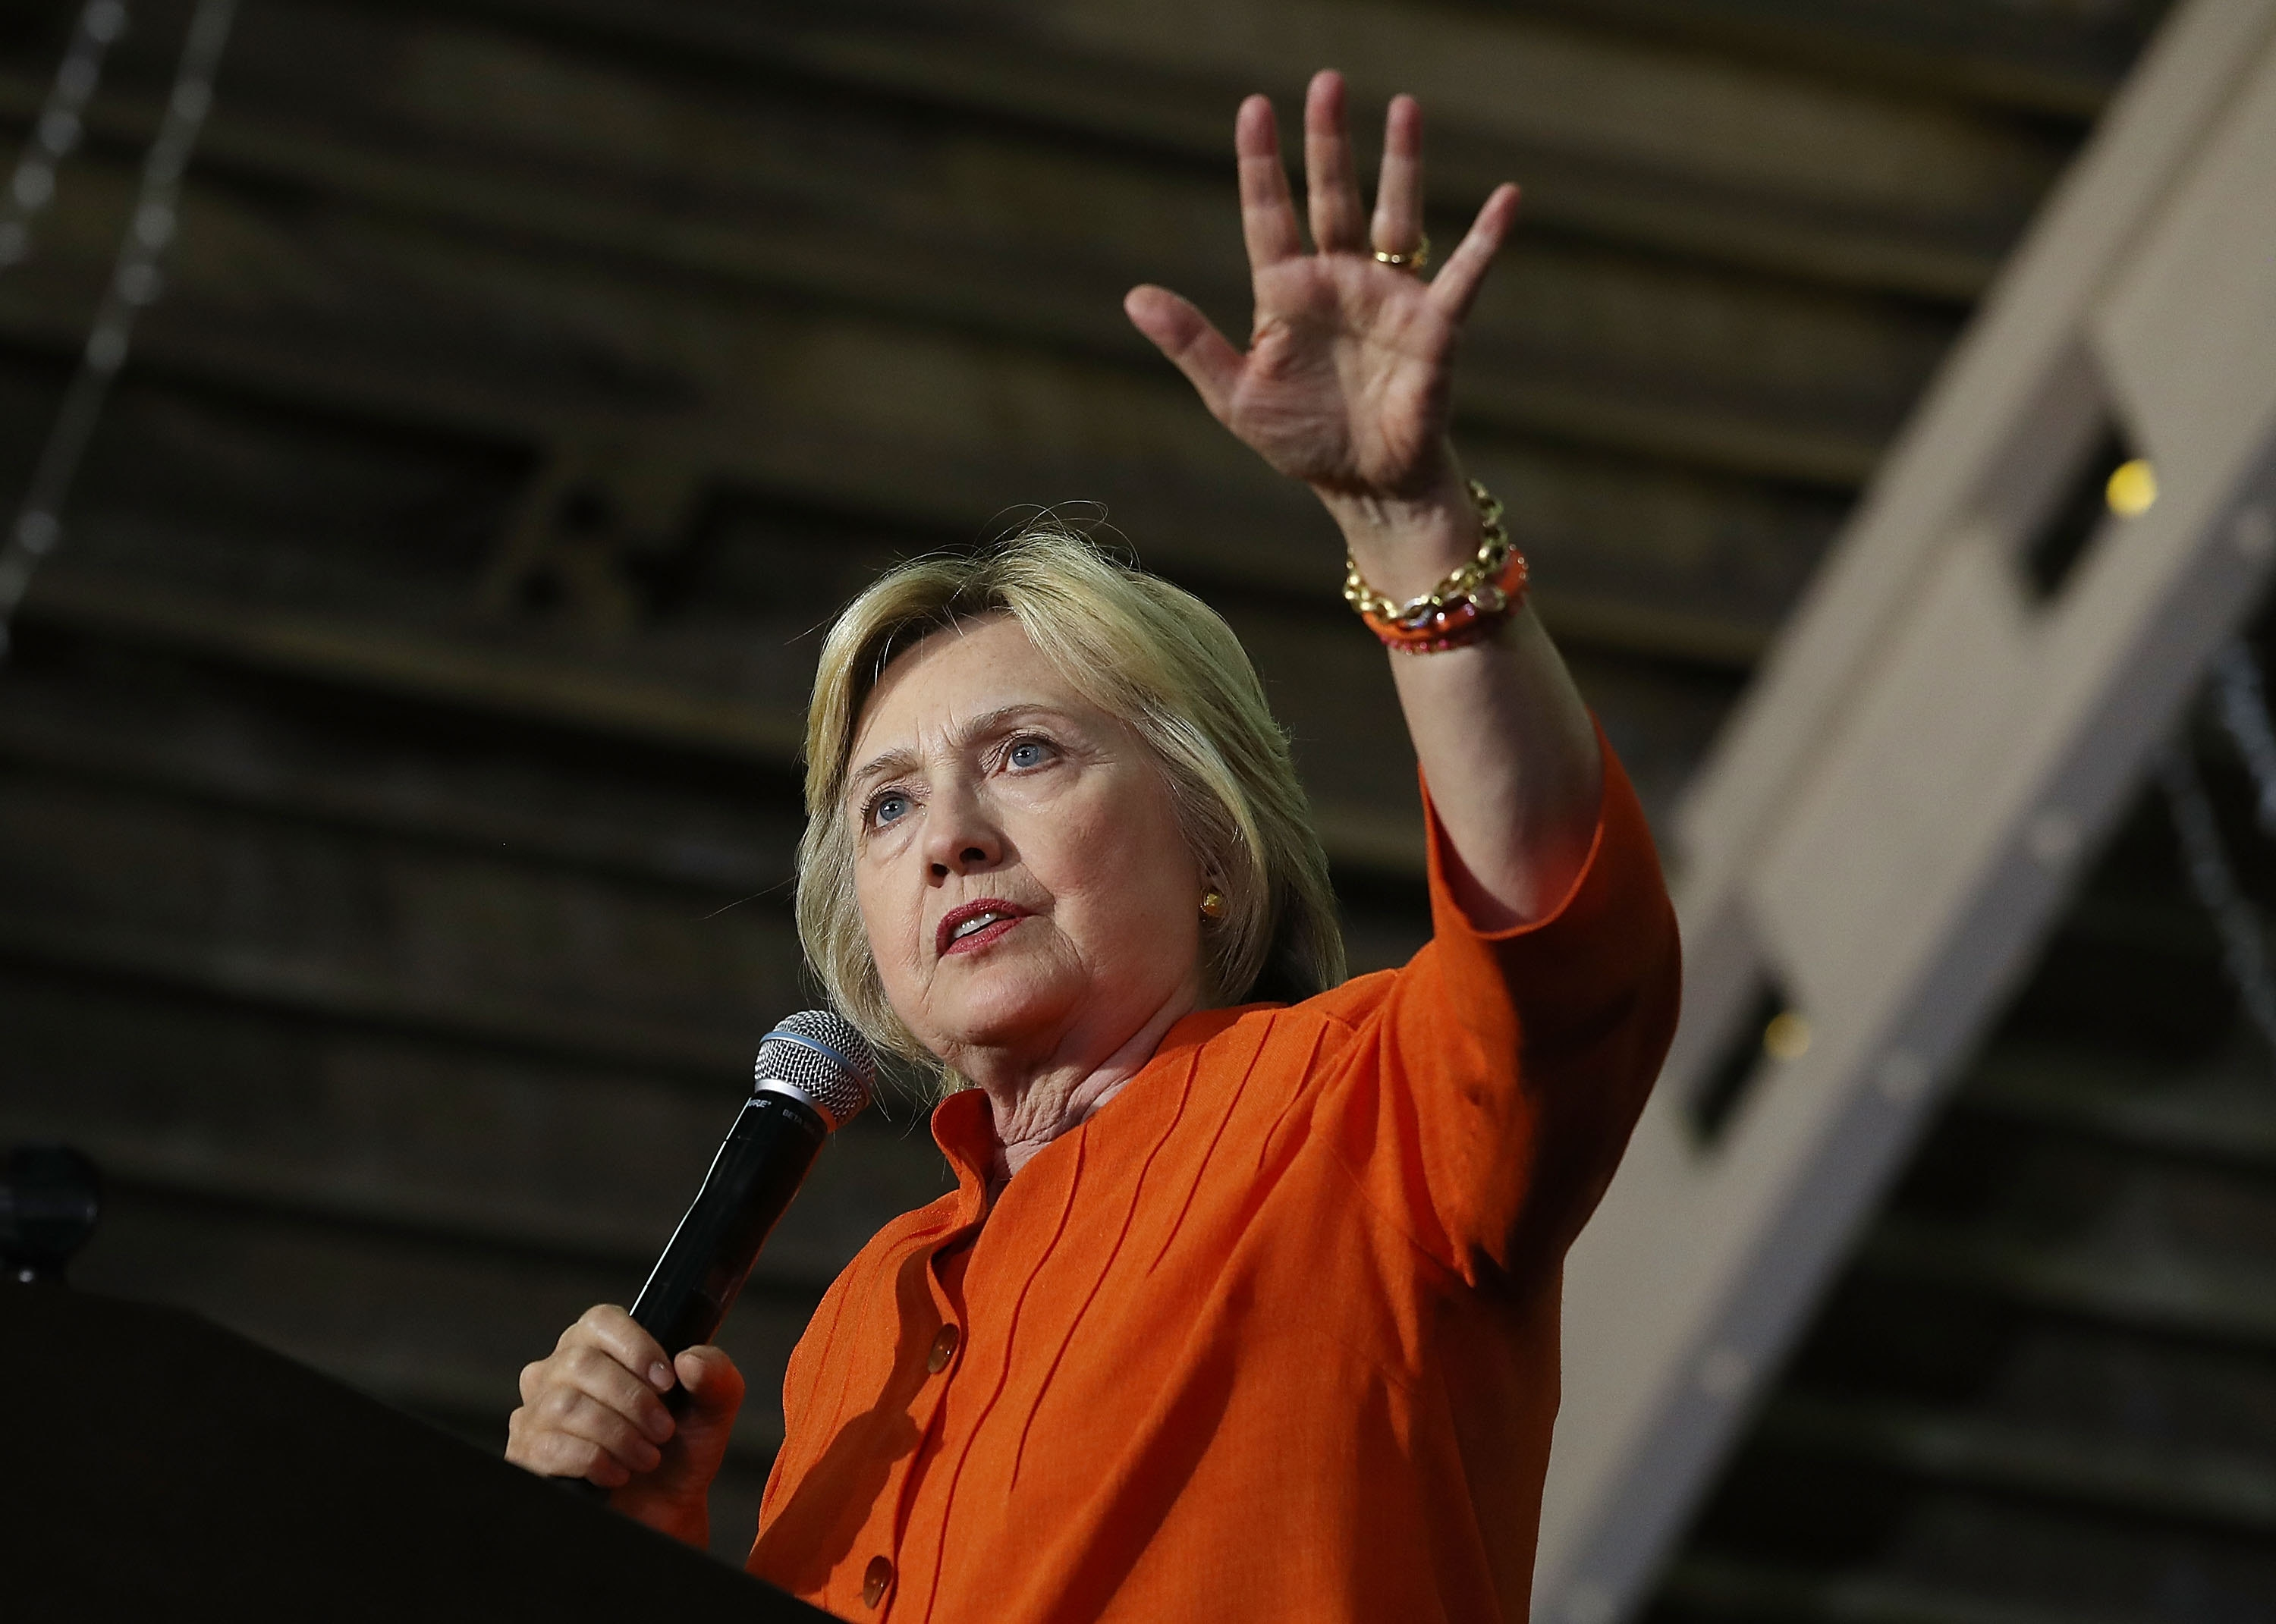 ST PETERSBURG, FL - AUGUST 08:  Democratic presidential nominee Hillary Clinton speaks during a campaign rally at the Coliseum on August 8, 2016 in St. Petersburg, Florida. A new national poll shows Clinton's lead expanding over Republican rival Donald Trump.  (Photo by Joe Raedle/Getty Images)